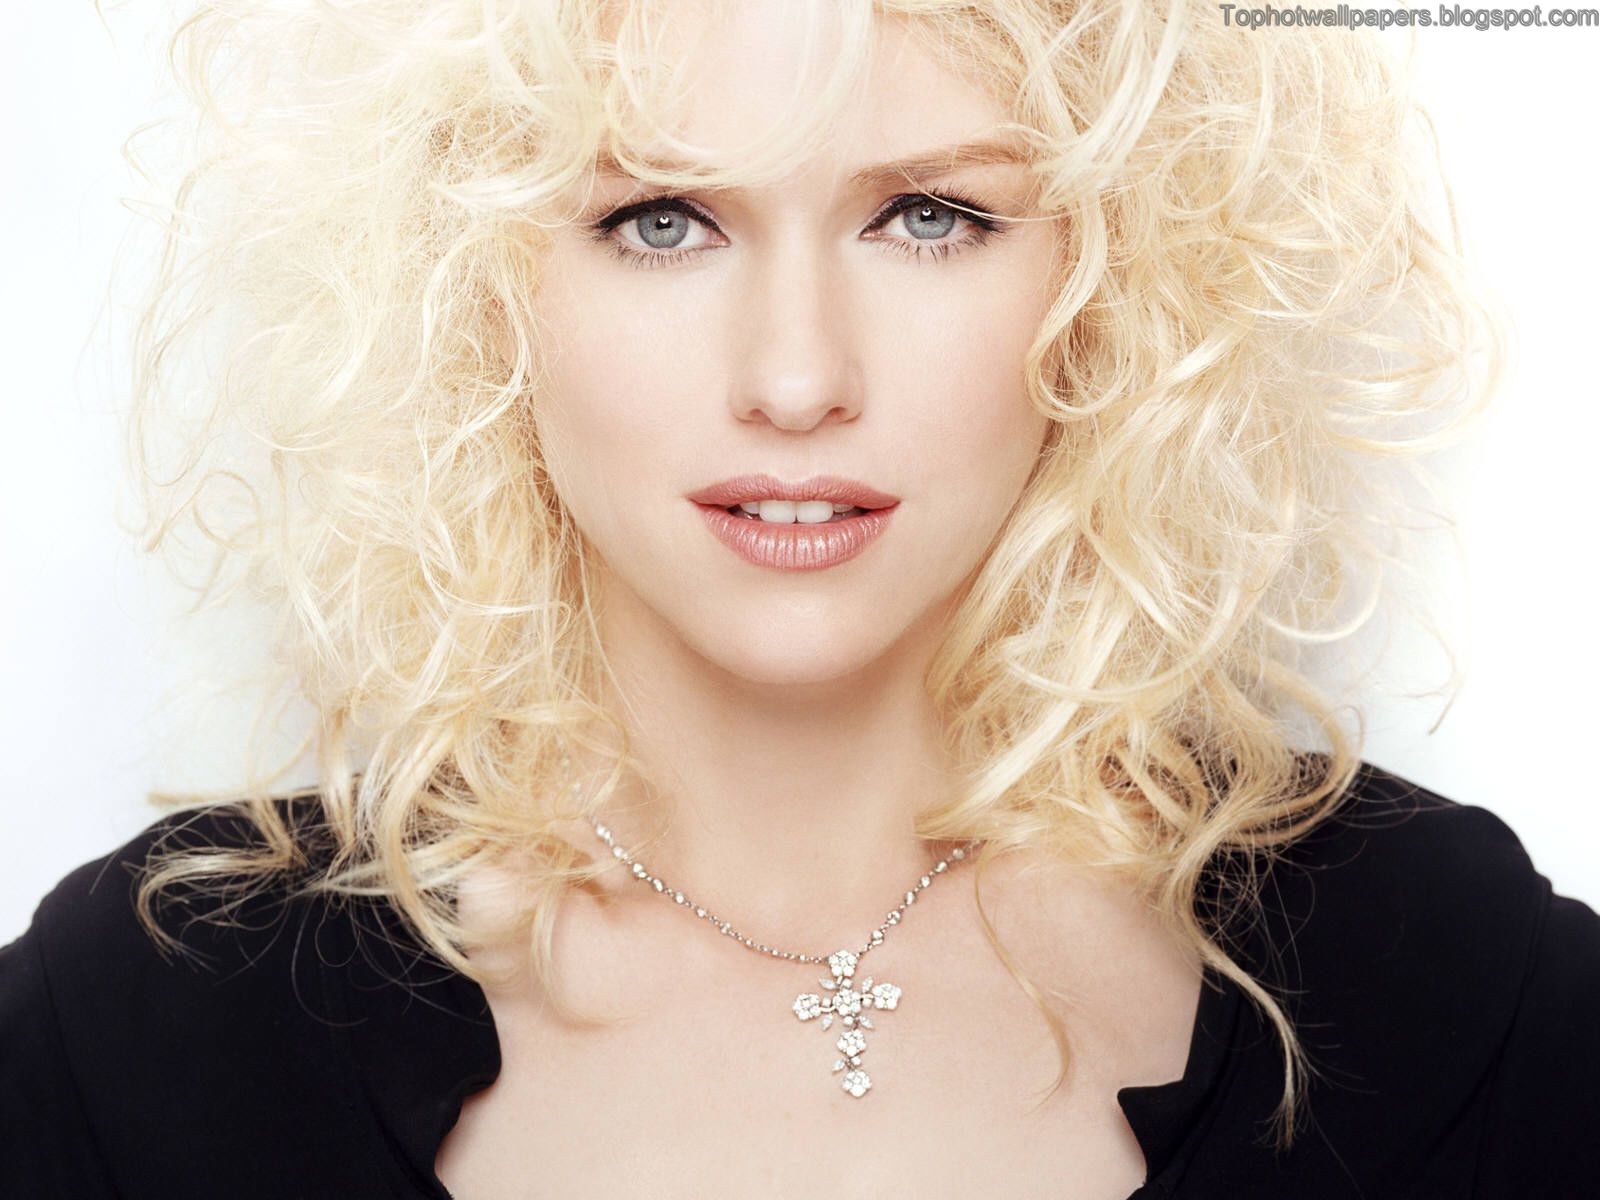 naomi watts wallpaper 31359 32091 hd wallpapers jpg 419